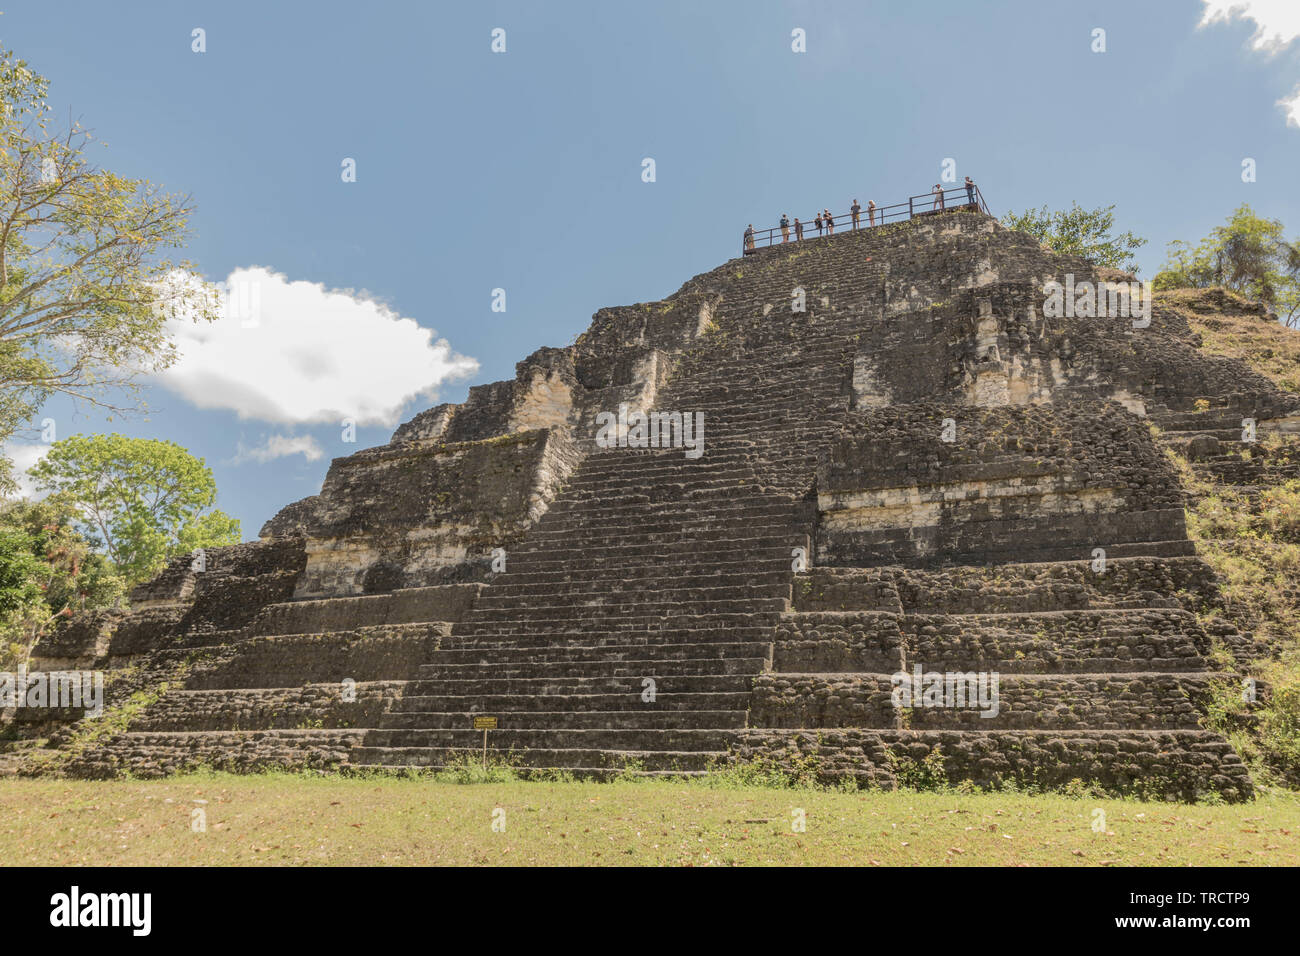 Ancient Mayan Pyramid with people standing at the top, in Tikal National Park, Guatemala - Stock Image